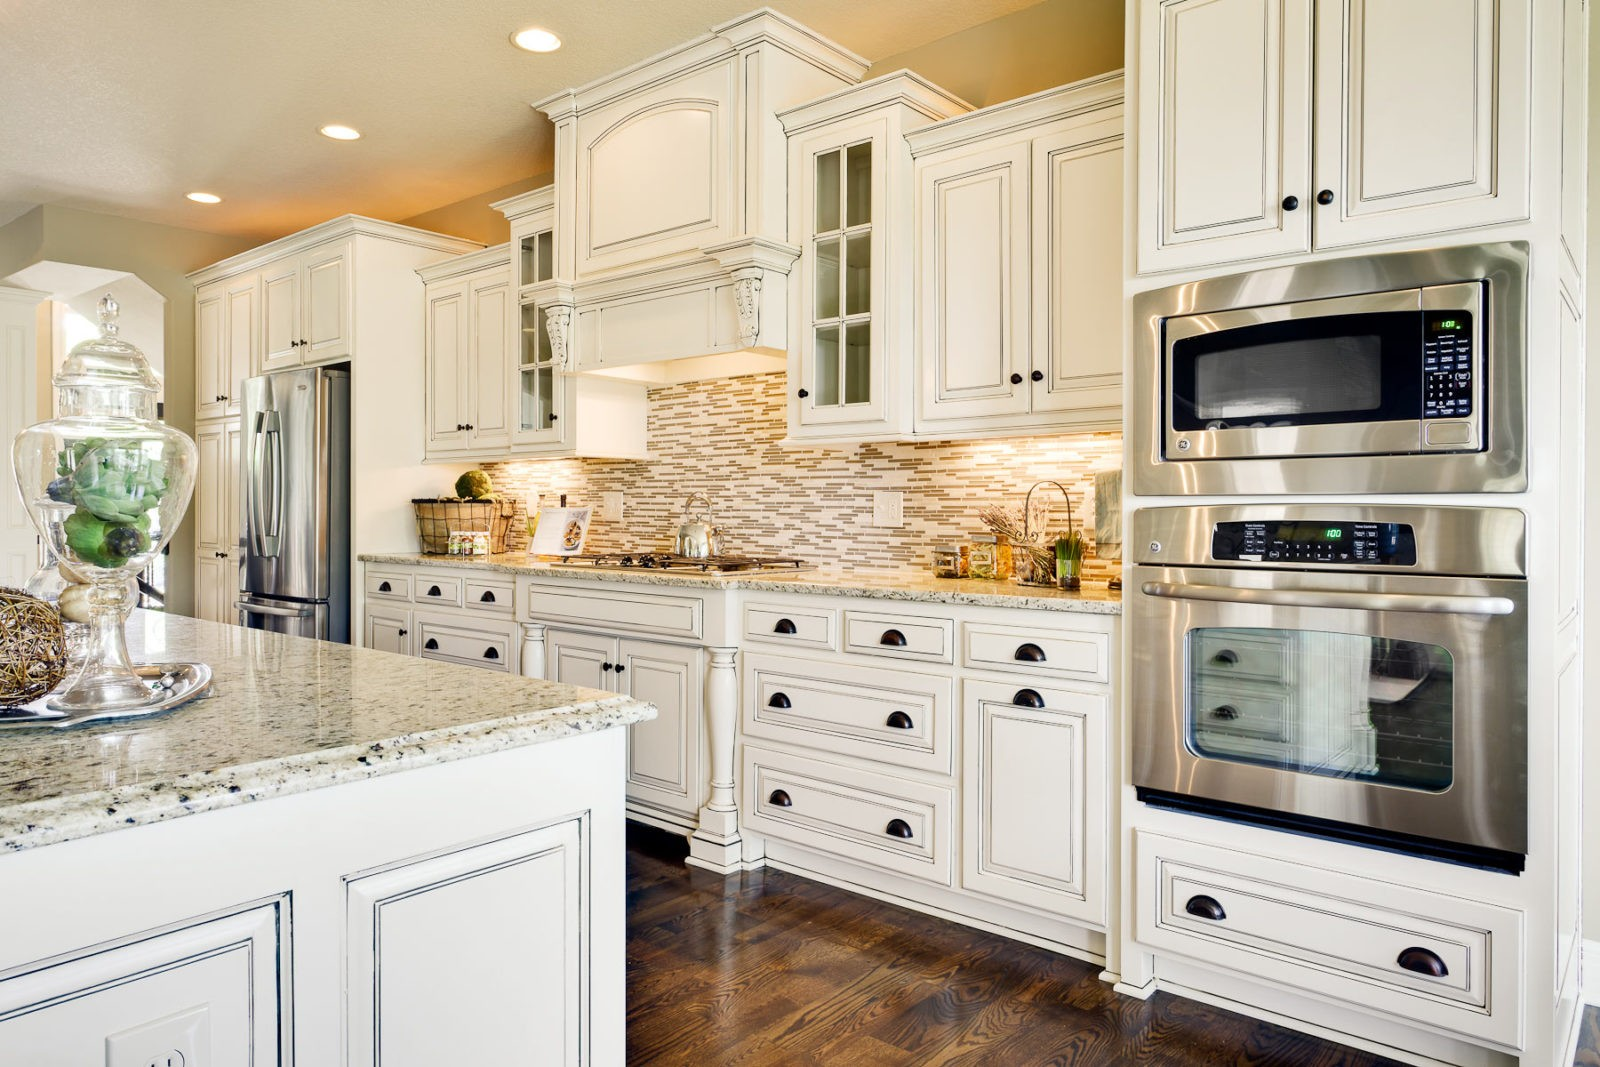 About Style Granite Kitchen Cabinets